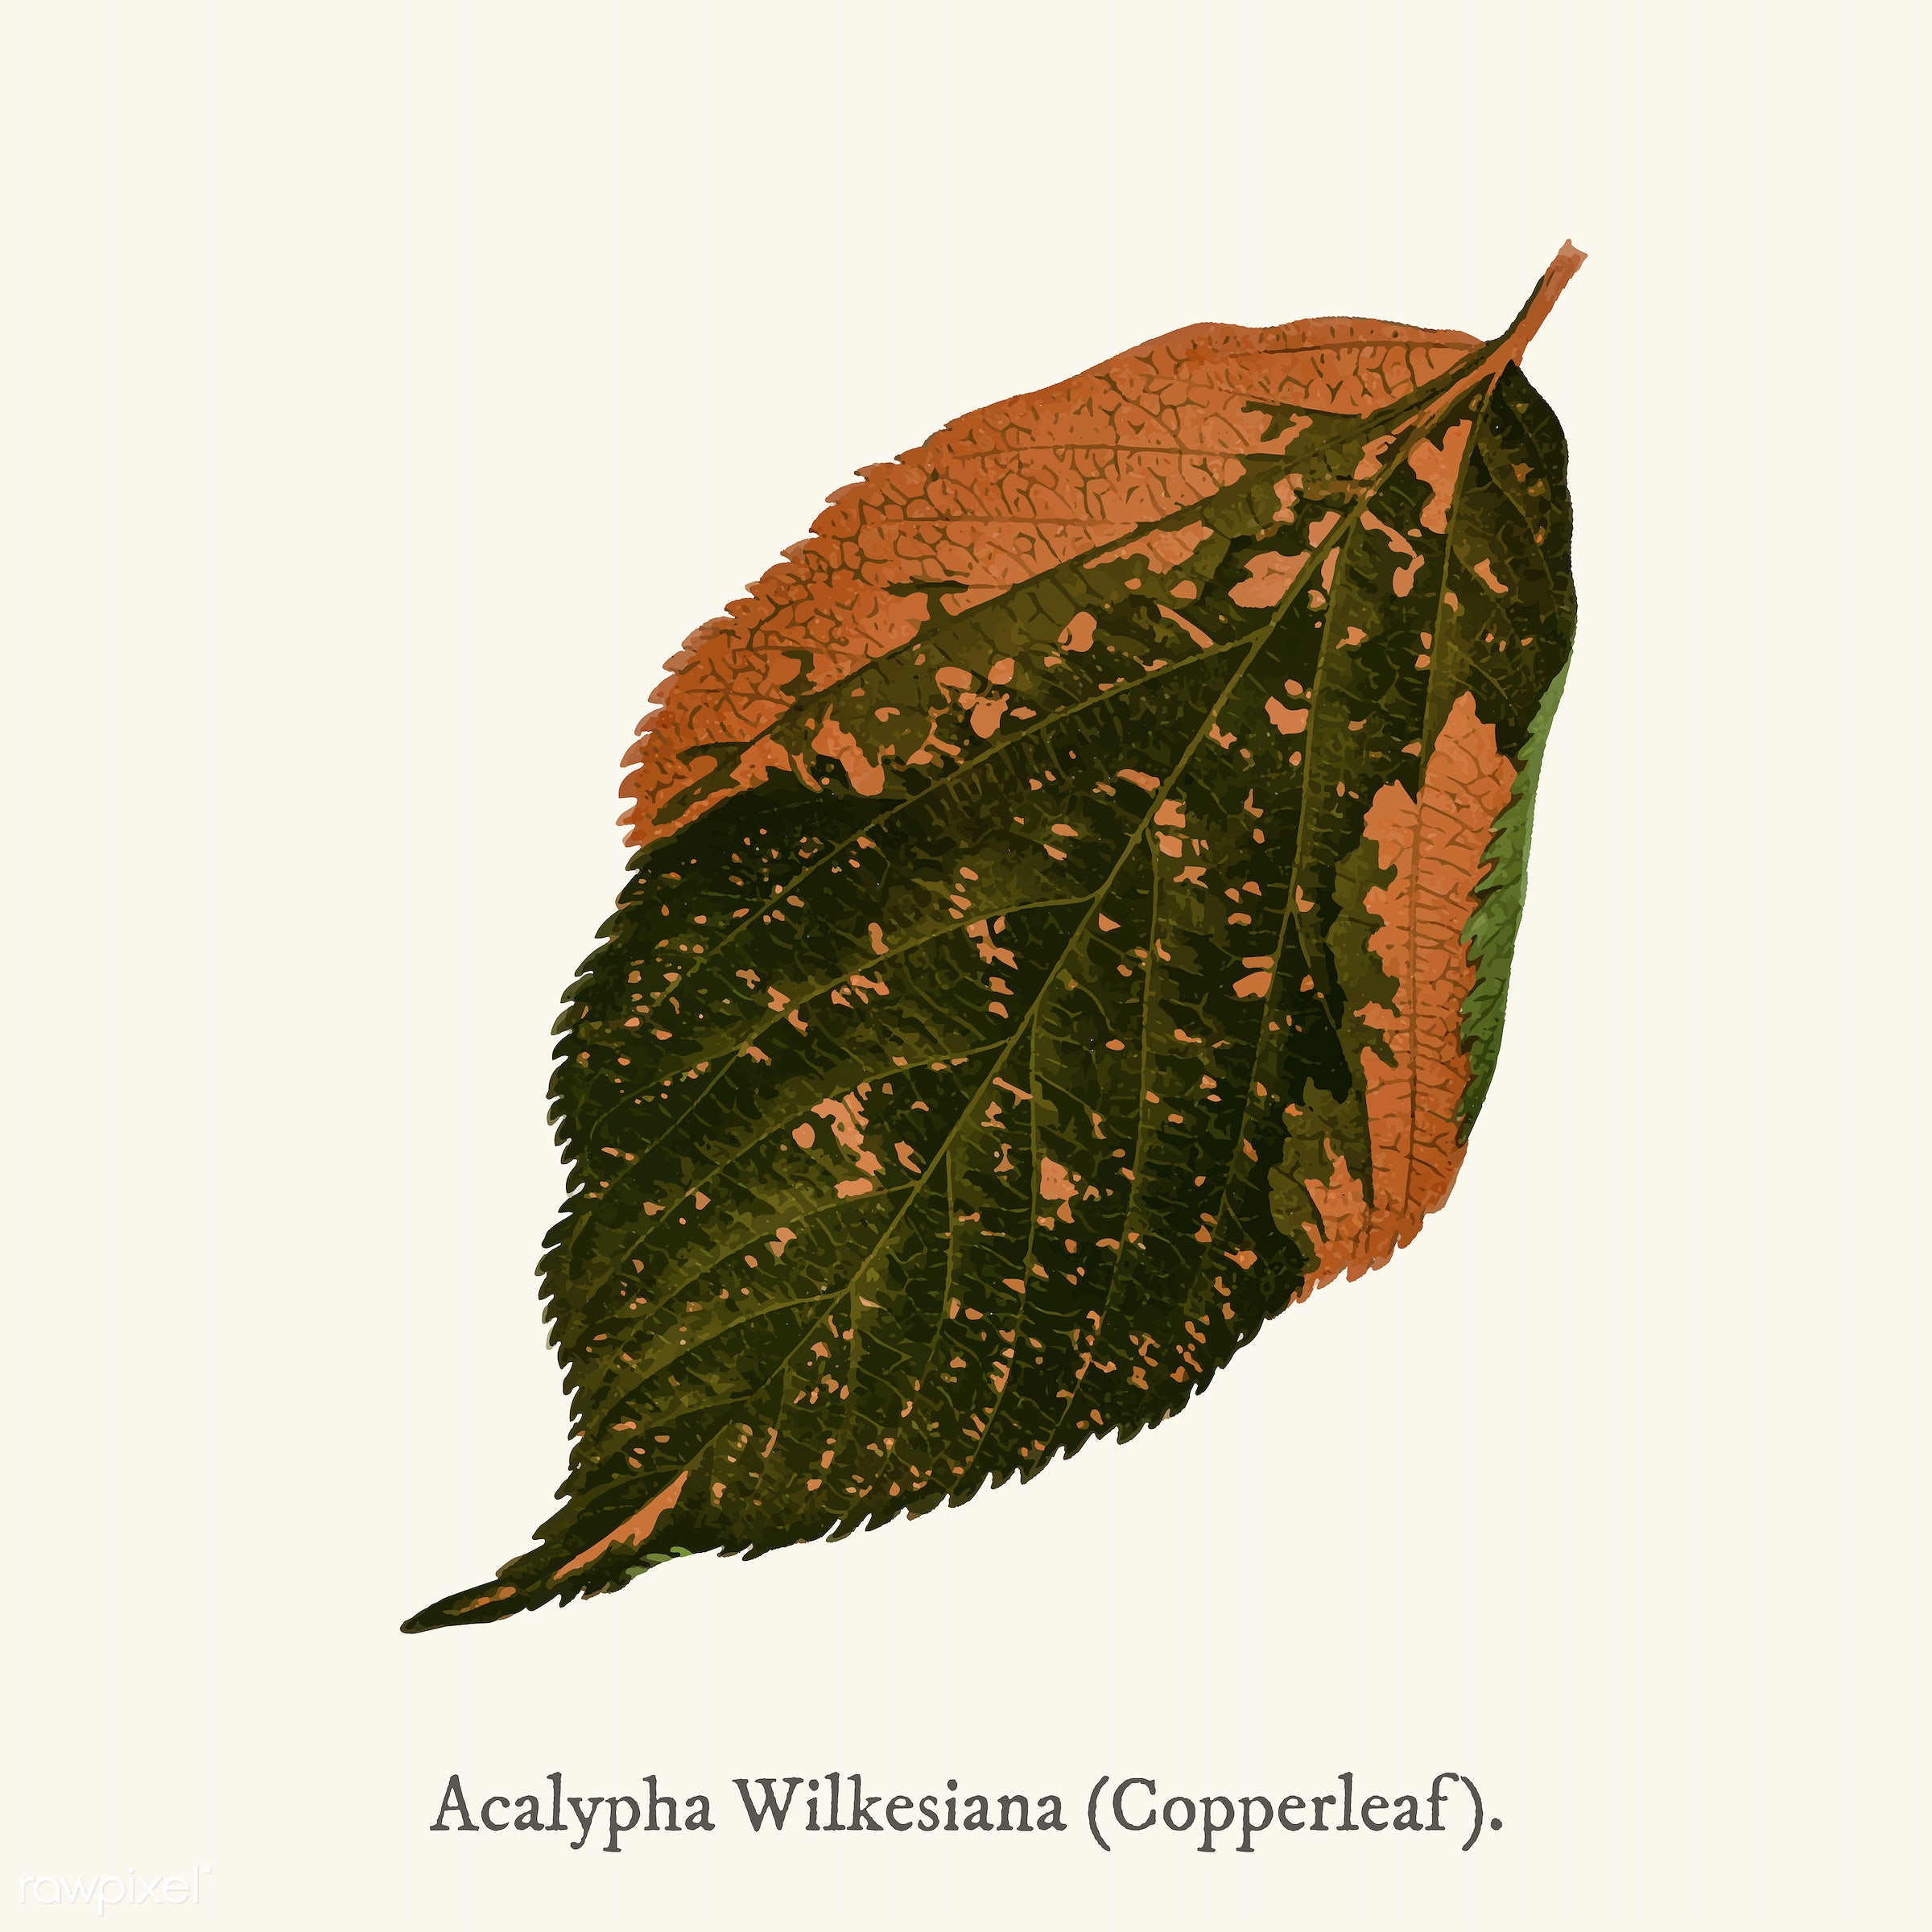 leaf, ancient, decoration, acalypha, acalypha tricolor, antique, decorate, design, drawing, graphic, illustration, leaves,...